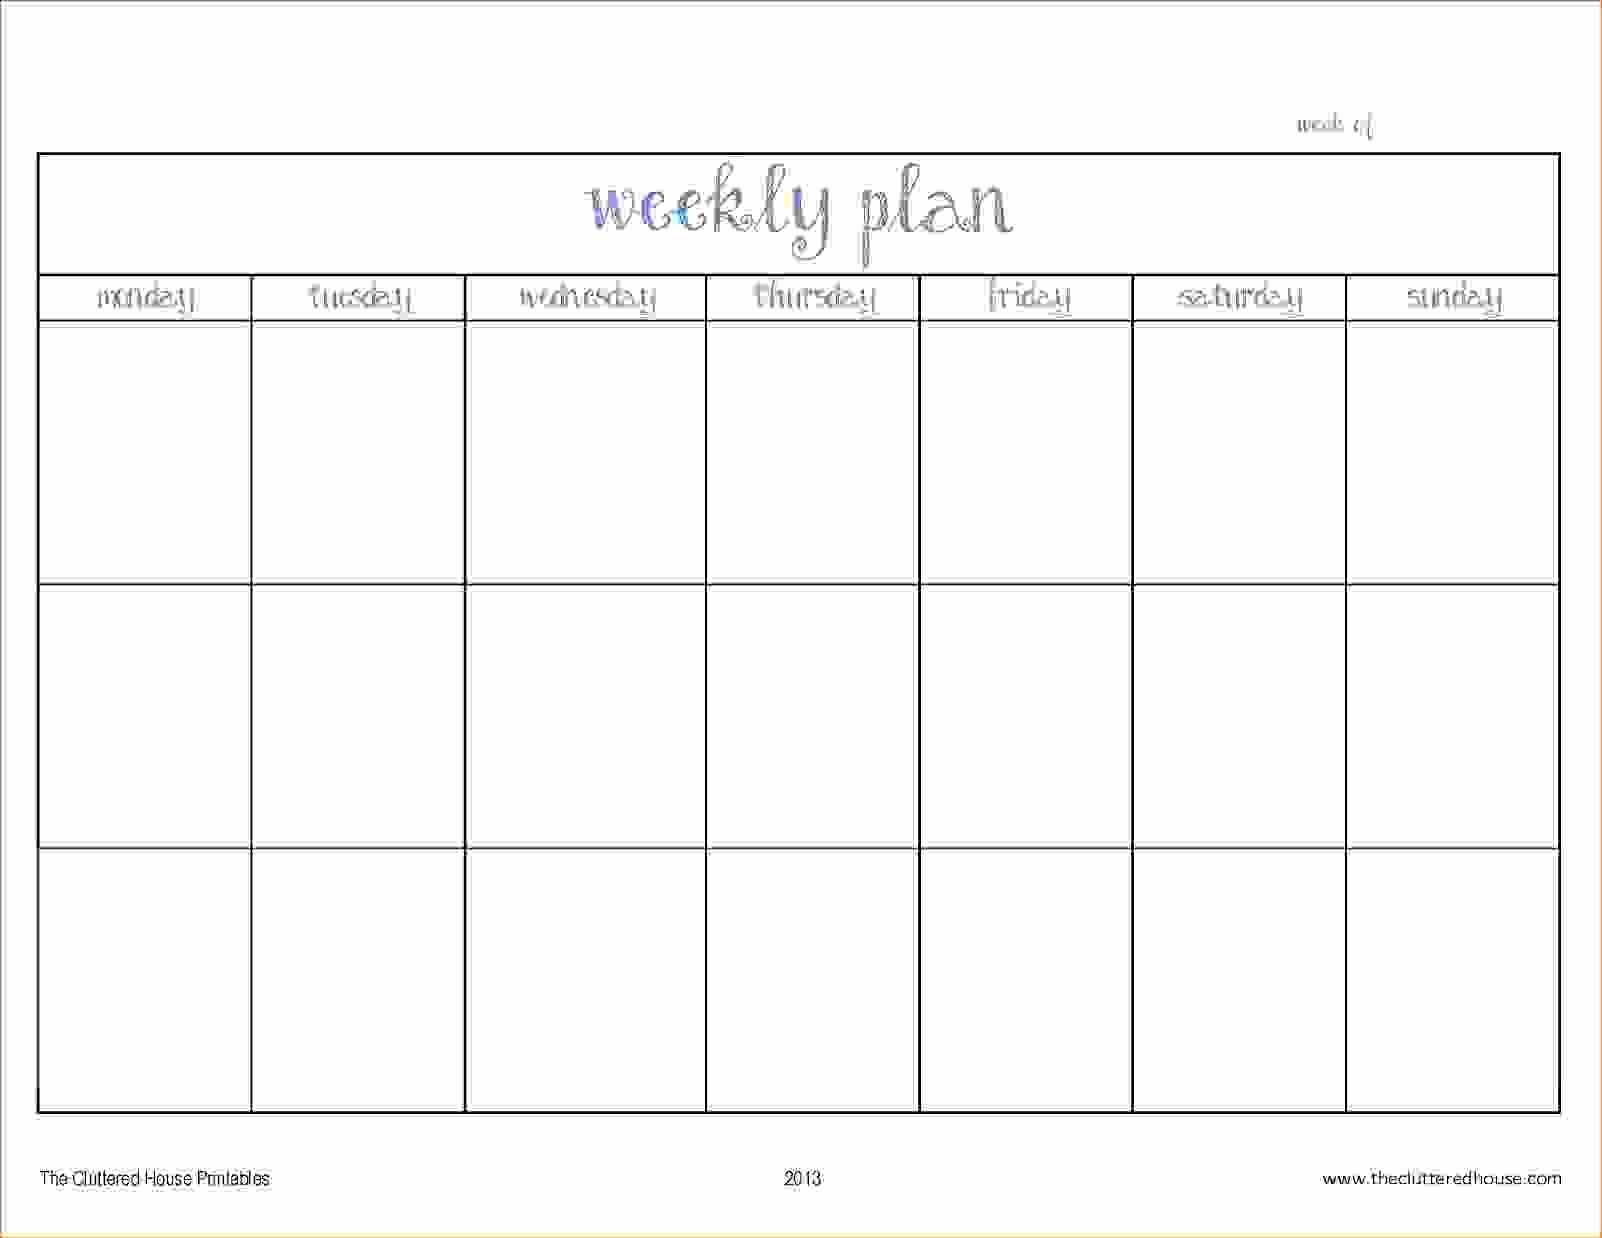 Printable Week Calendar Schedule Template Free Two Blank Design | Smorad for 2 Week Calendar Printable Free